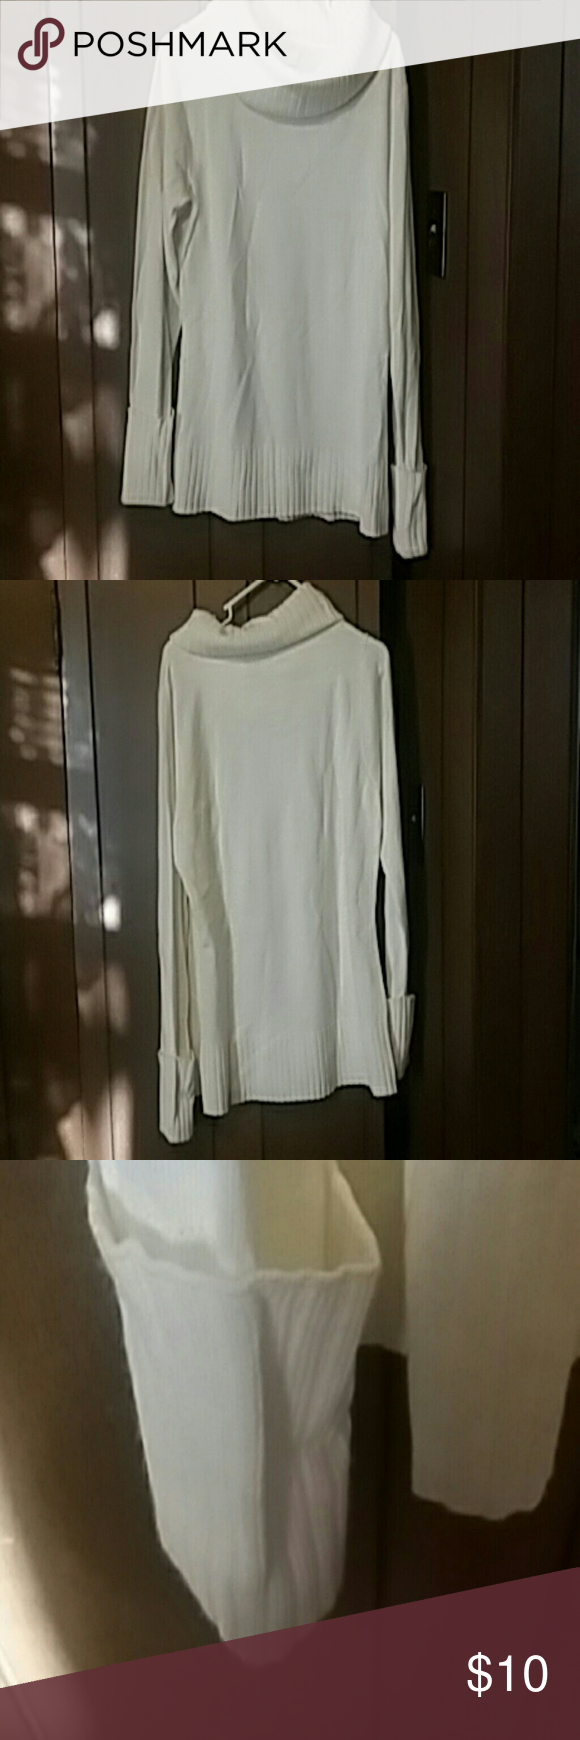 New York & company cream colored sweater. L | Cowl neck, Cowl neck ...